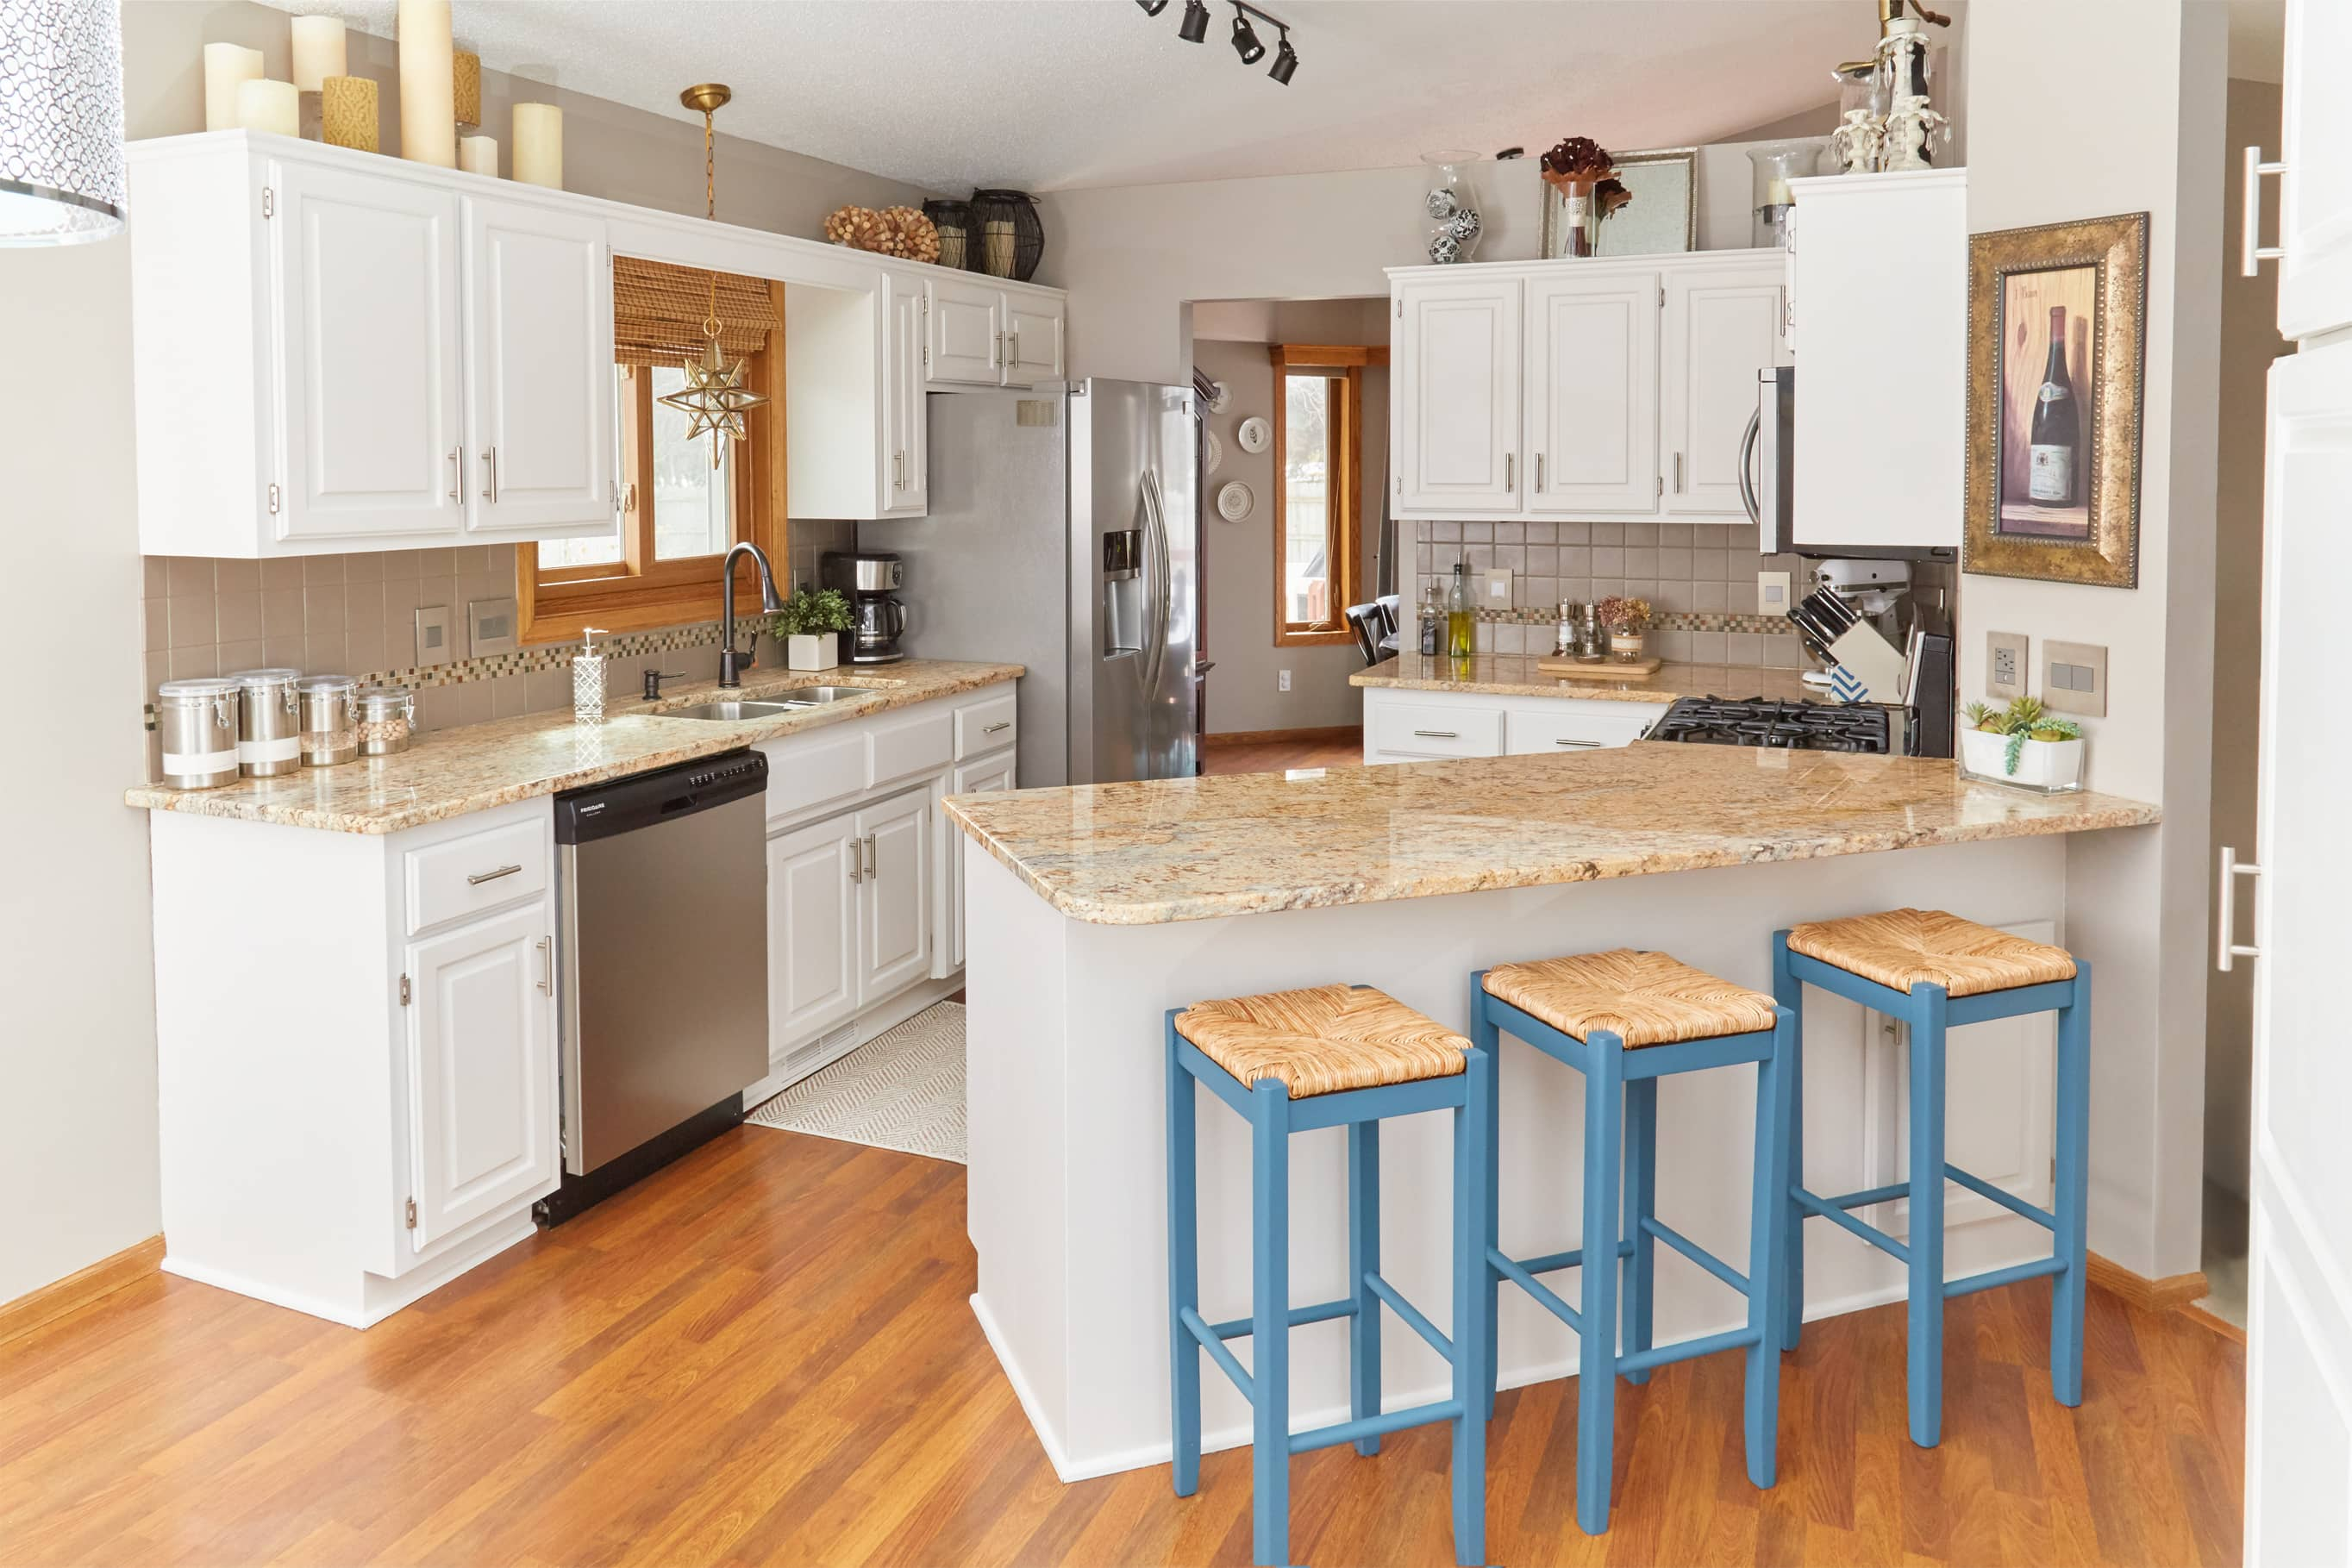 Paint Your Kitchen Cabinets The Best Way To Paint Your Kitchen Cabinets Refashionably Late